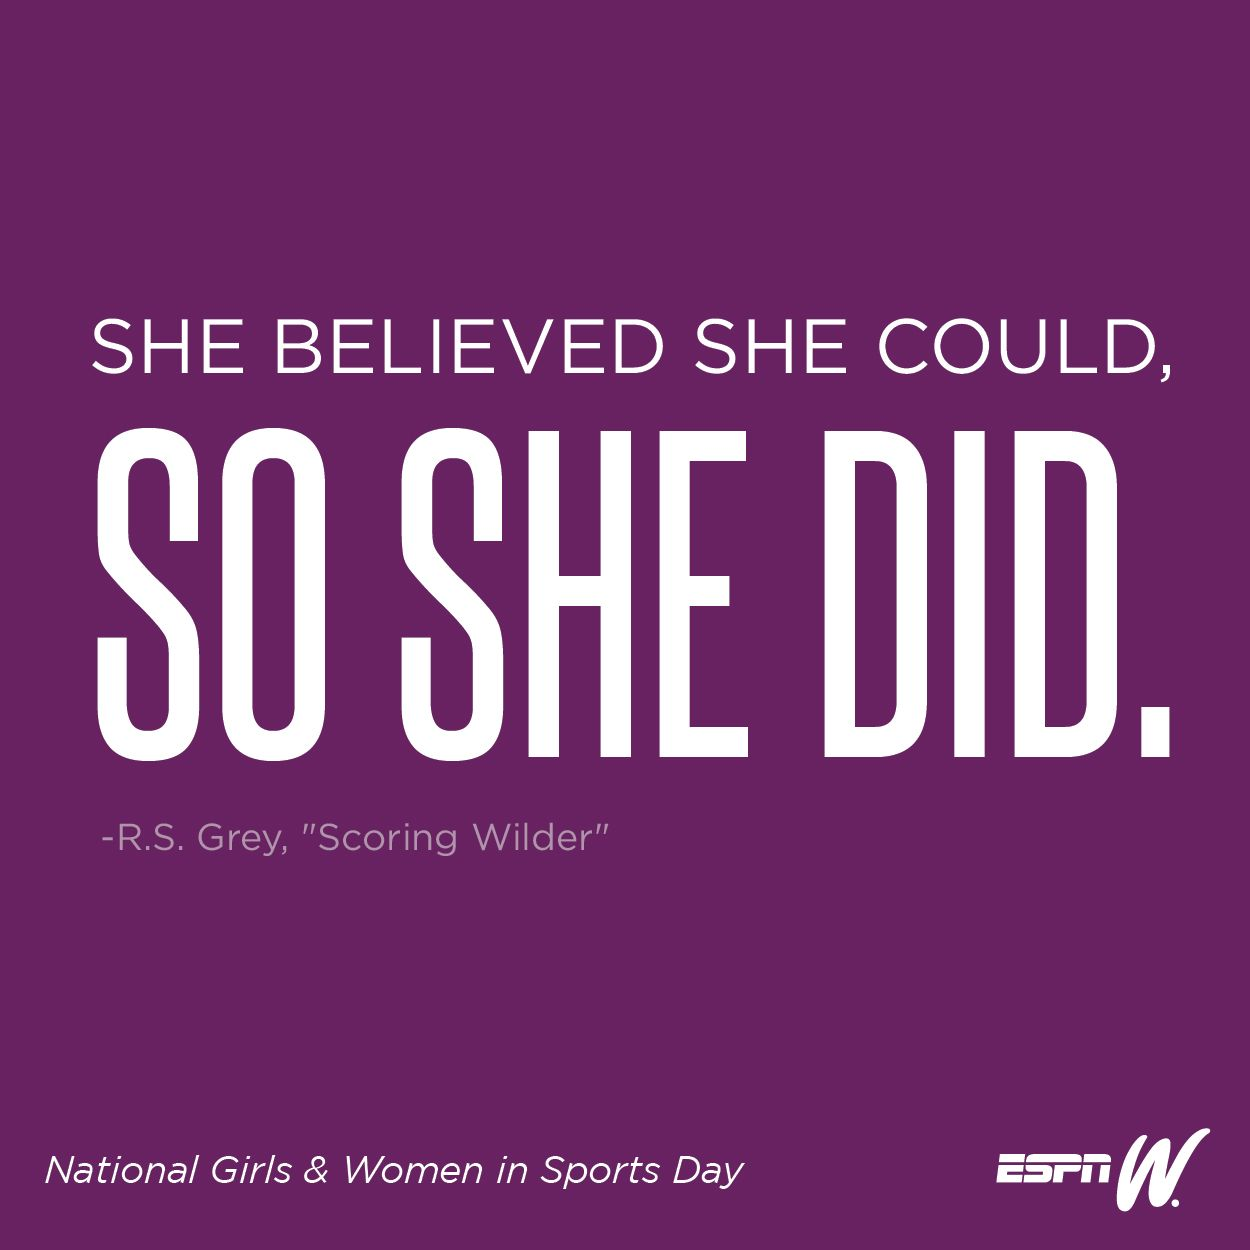 National Girls And Women In Sports Day In 2020 Motivational Quotes For Girls Inspirational Quotes For Girls Sports Quotes